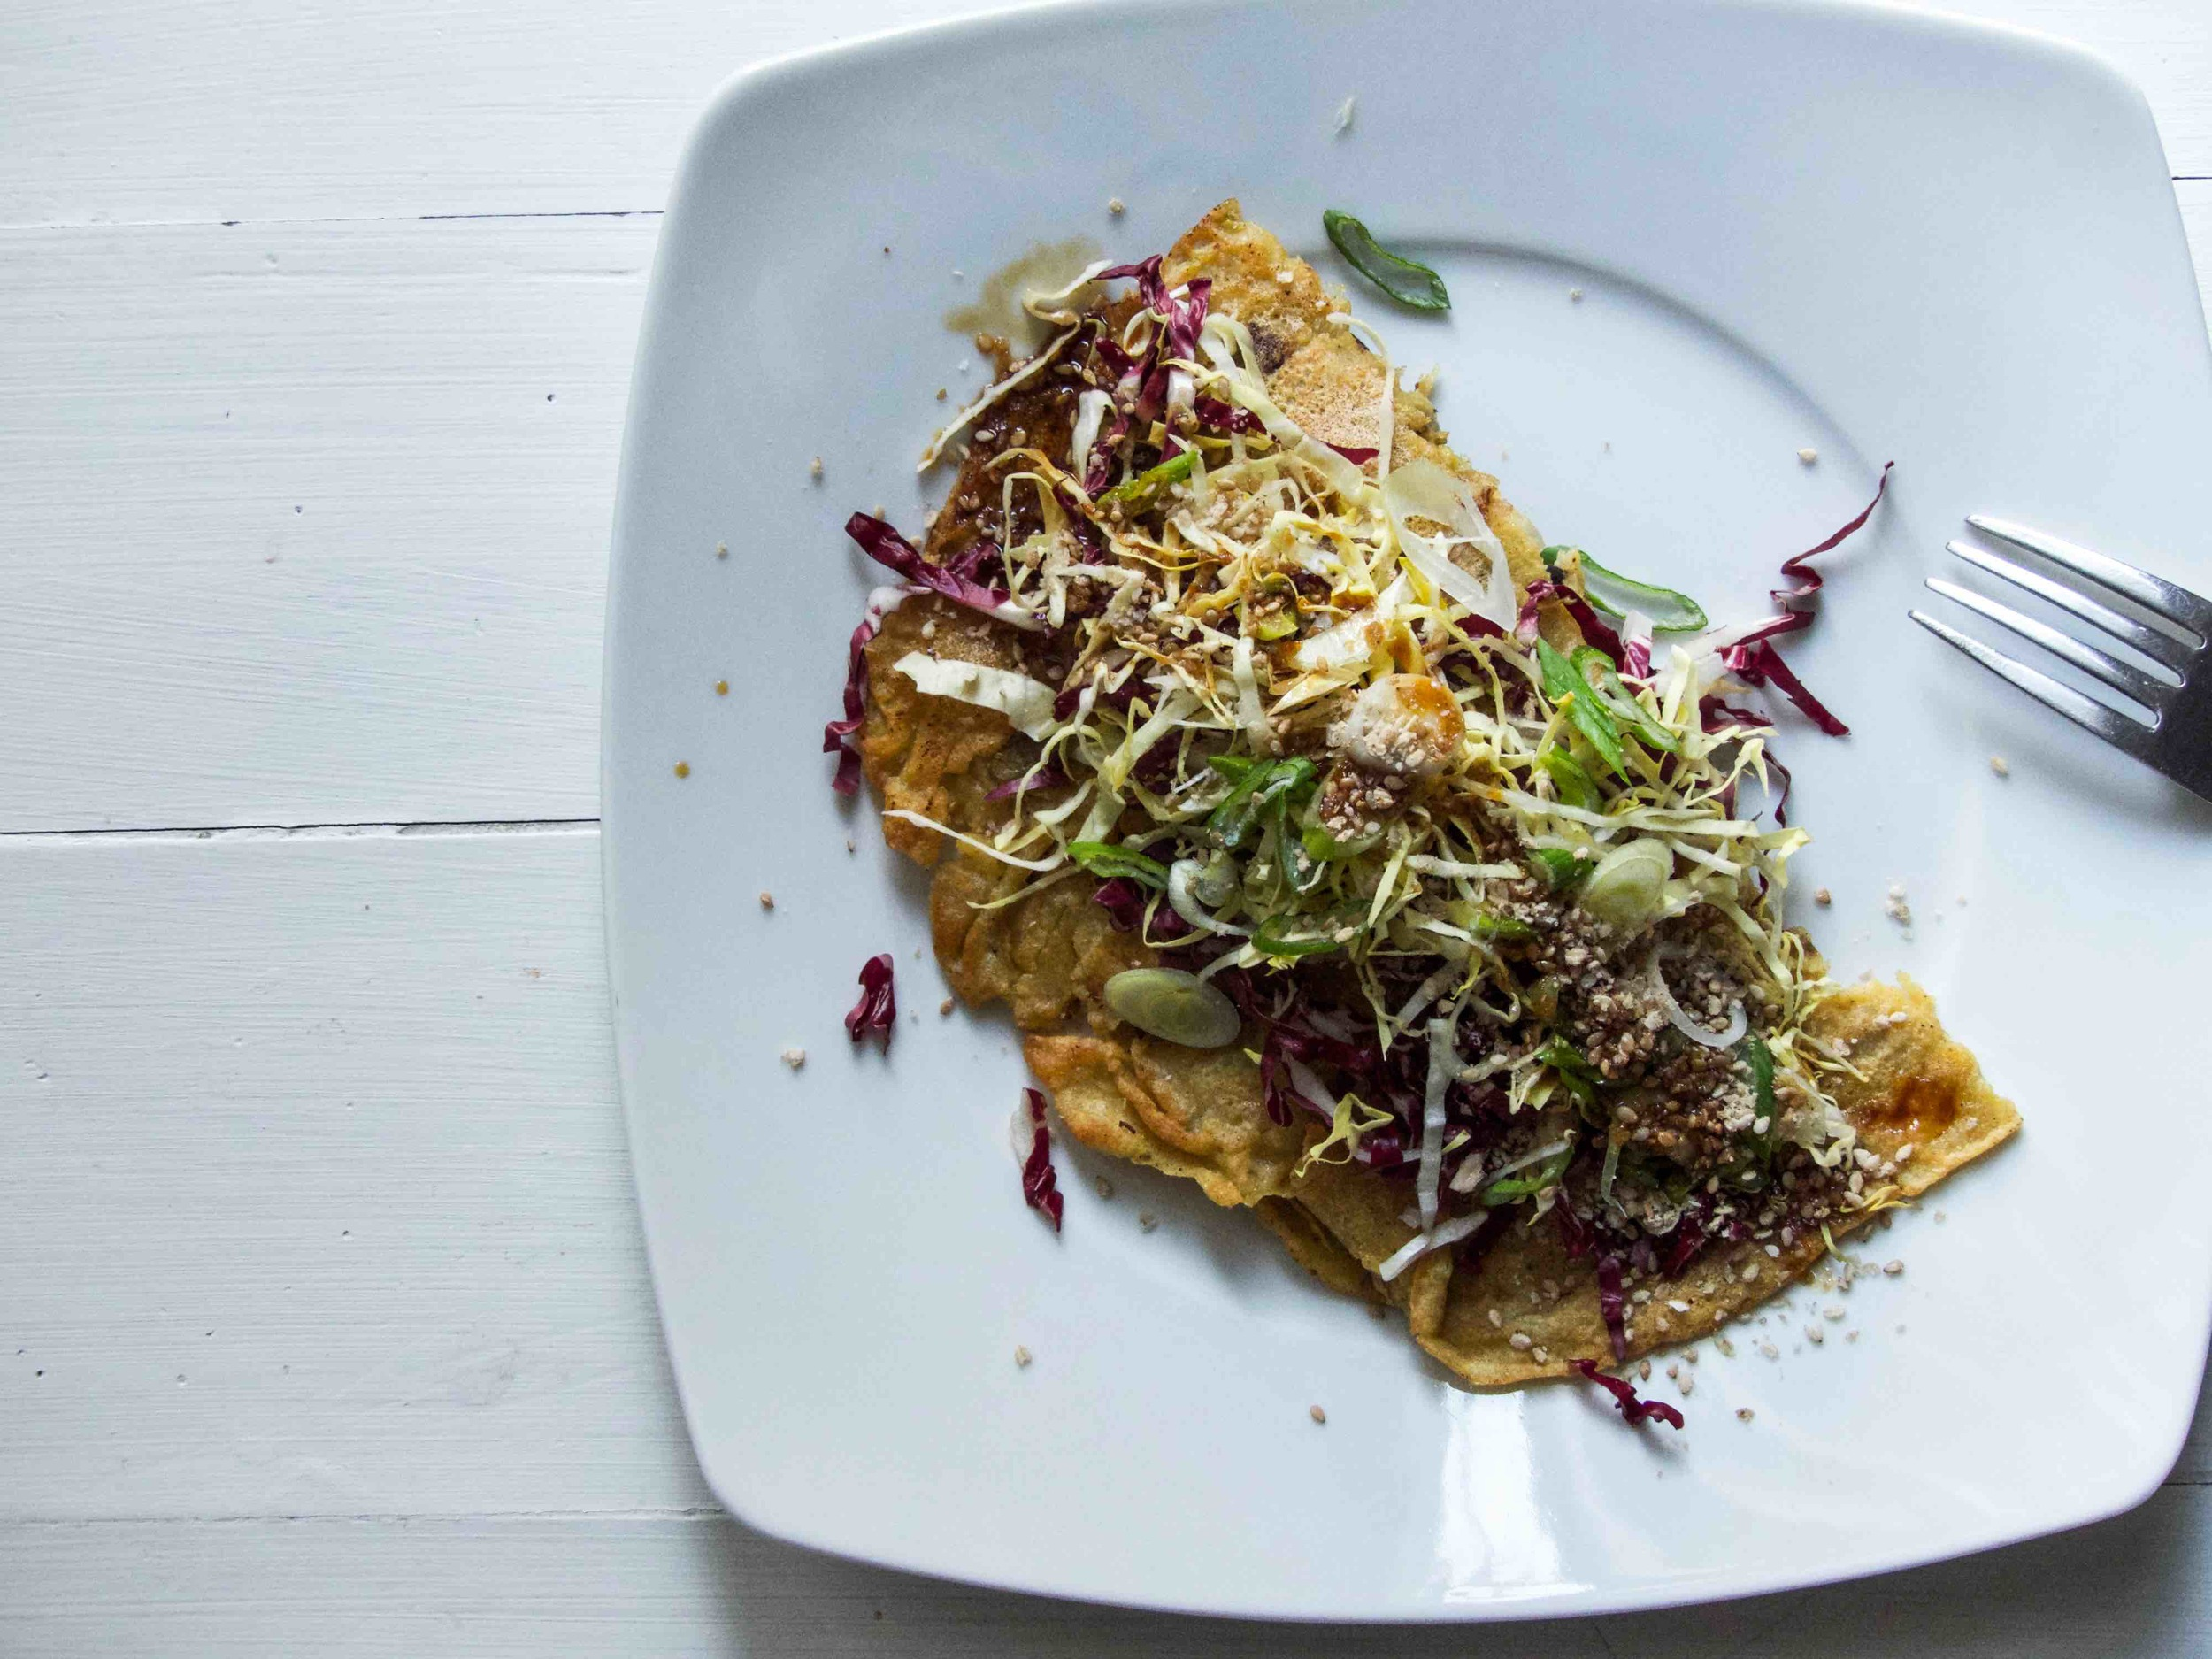 Transfer the omelette to a plate and start garnishing with shredded cabbage, radicchio, grinded sesame seeds, and chopped spring onion.